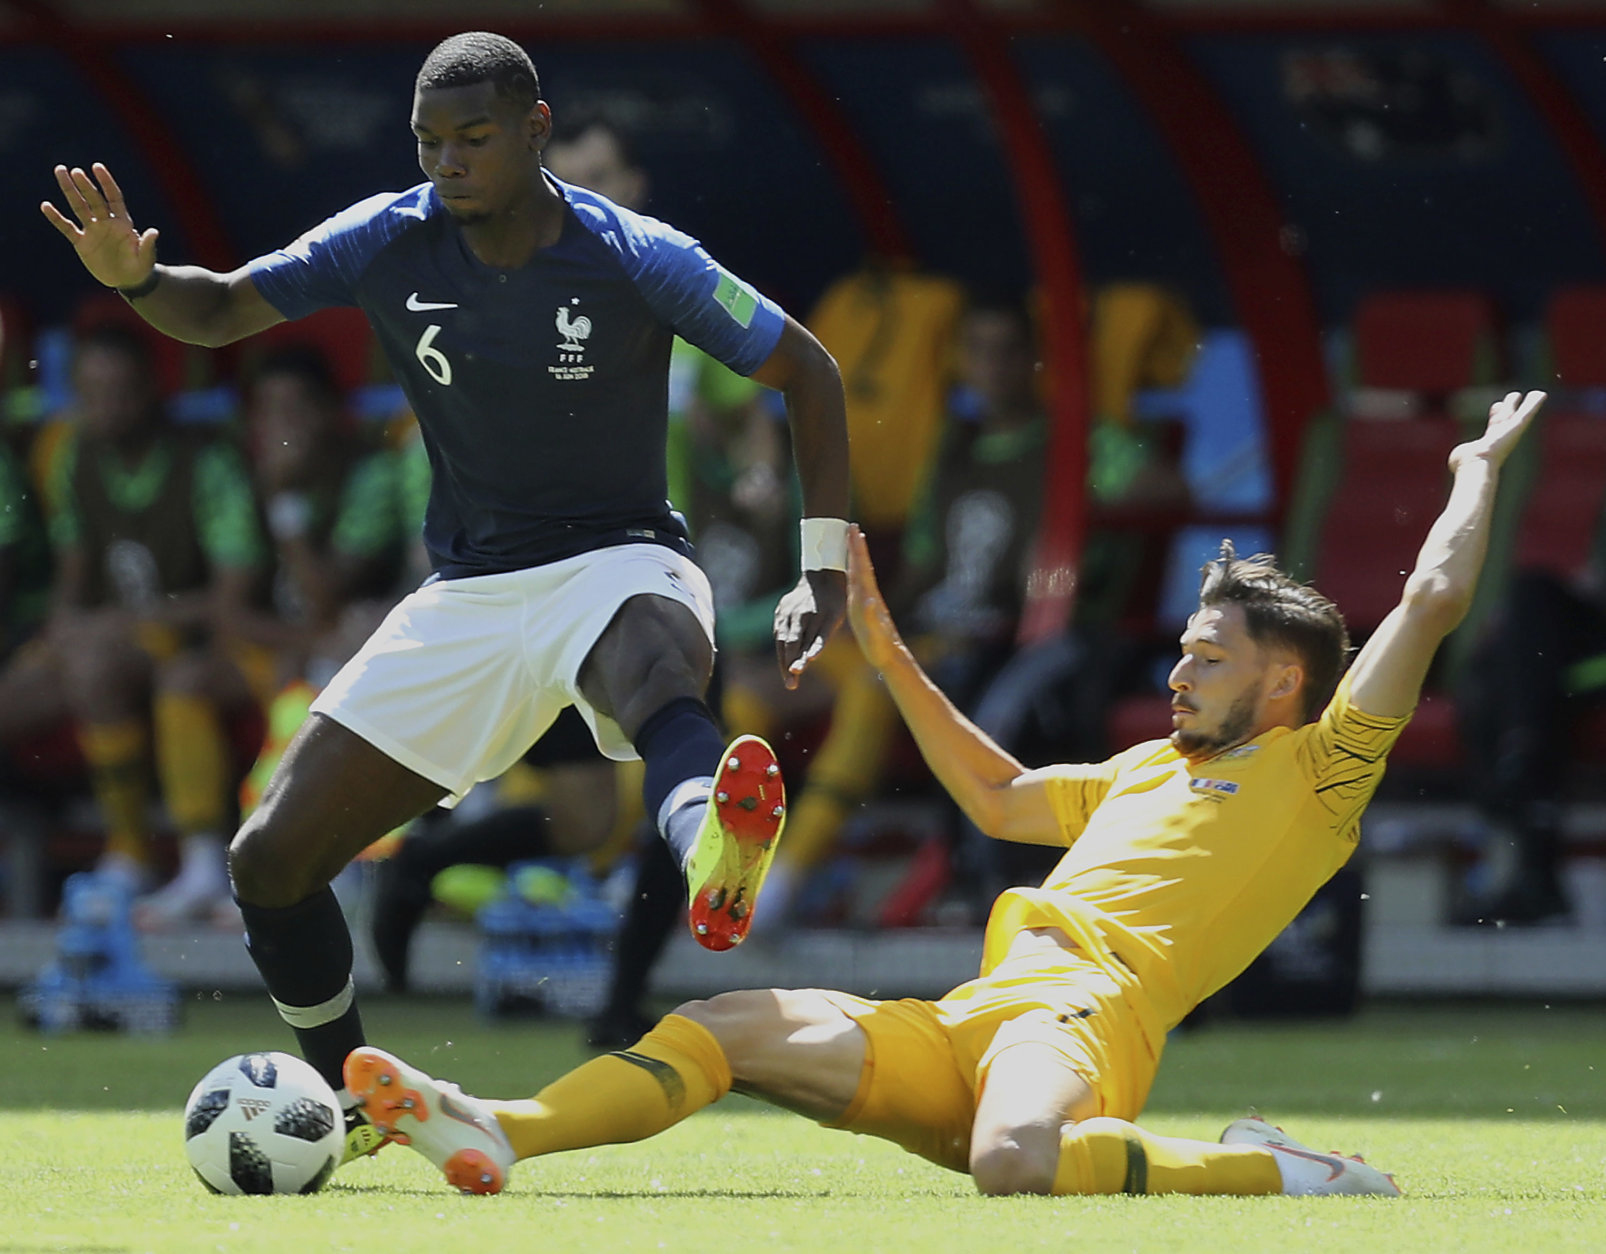 France's Paul Pogba, left, and Australia's Mathew Leckie, right, challenge the ball during the group C match between France and Australia at the 2018 soccer World Cup in the Kazan Arena in Kazan, Russia, Saturday, June 16, 2018. (AP Photo/David Vincent)